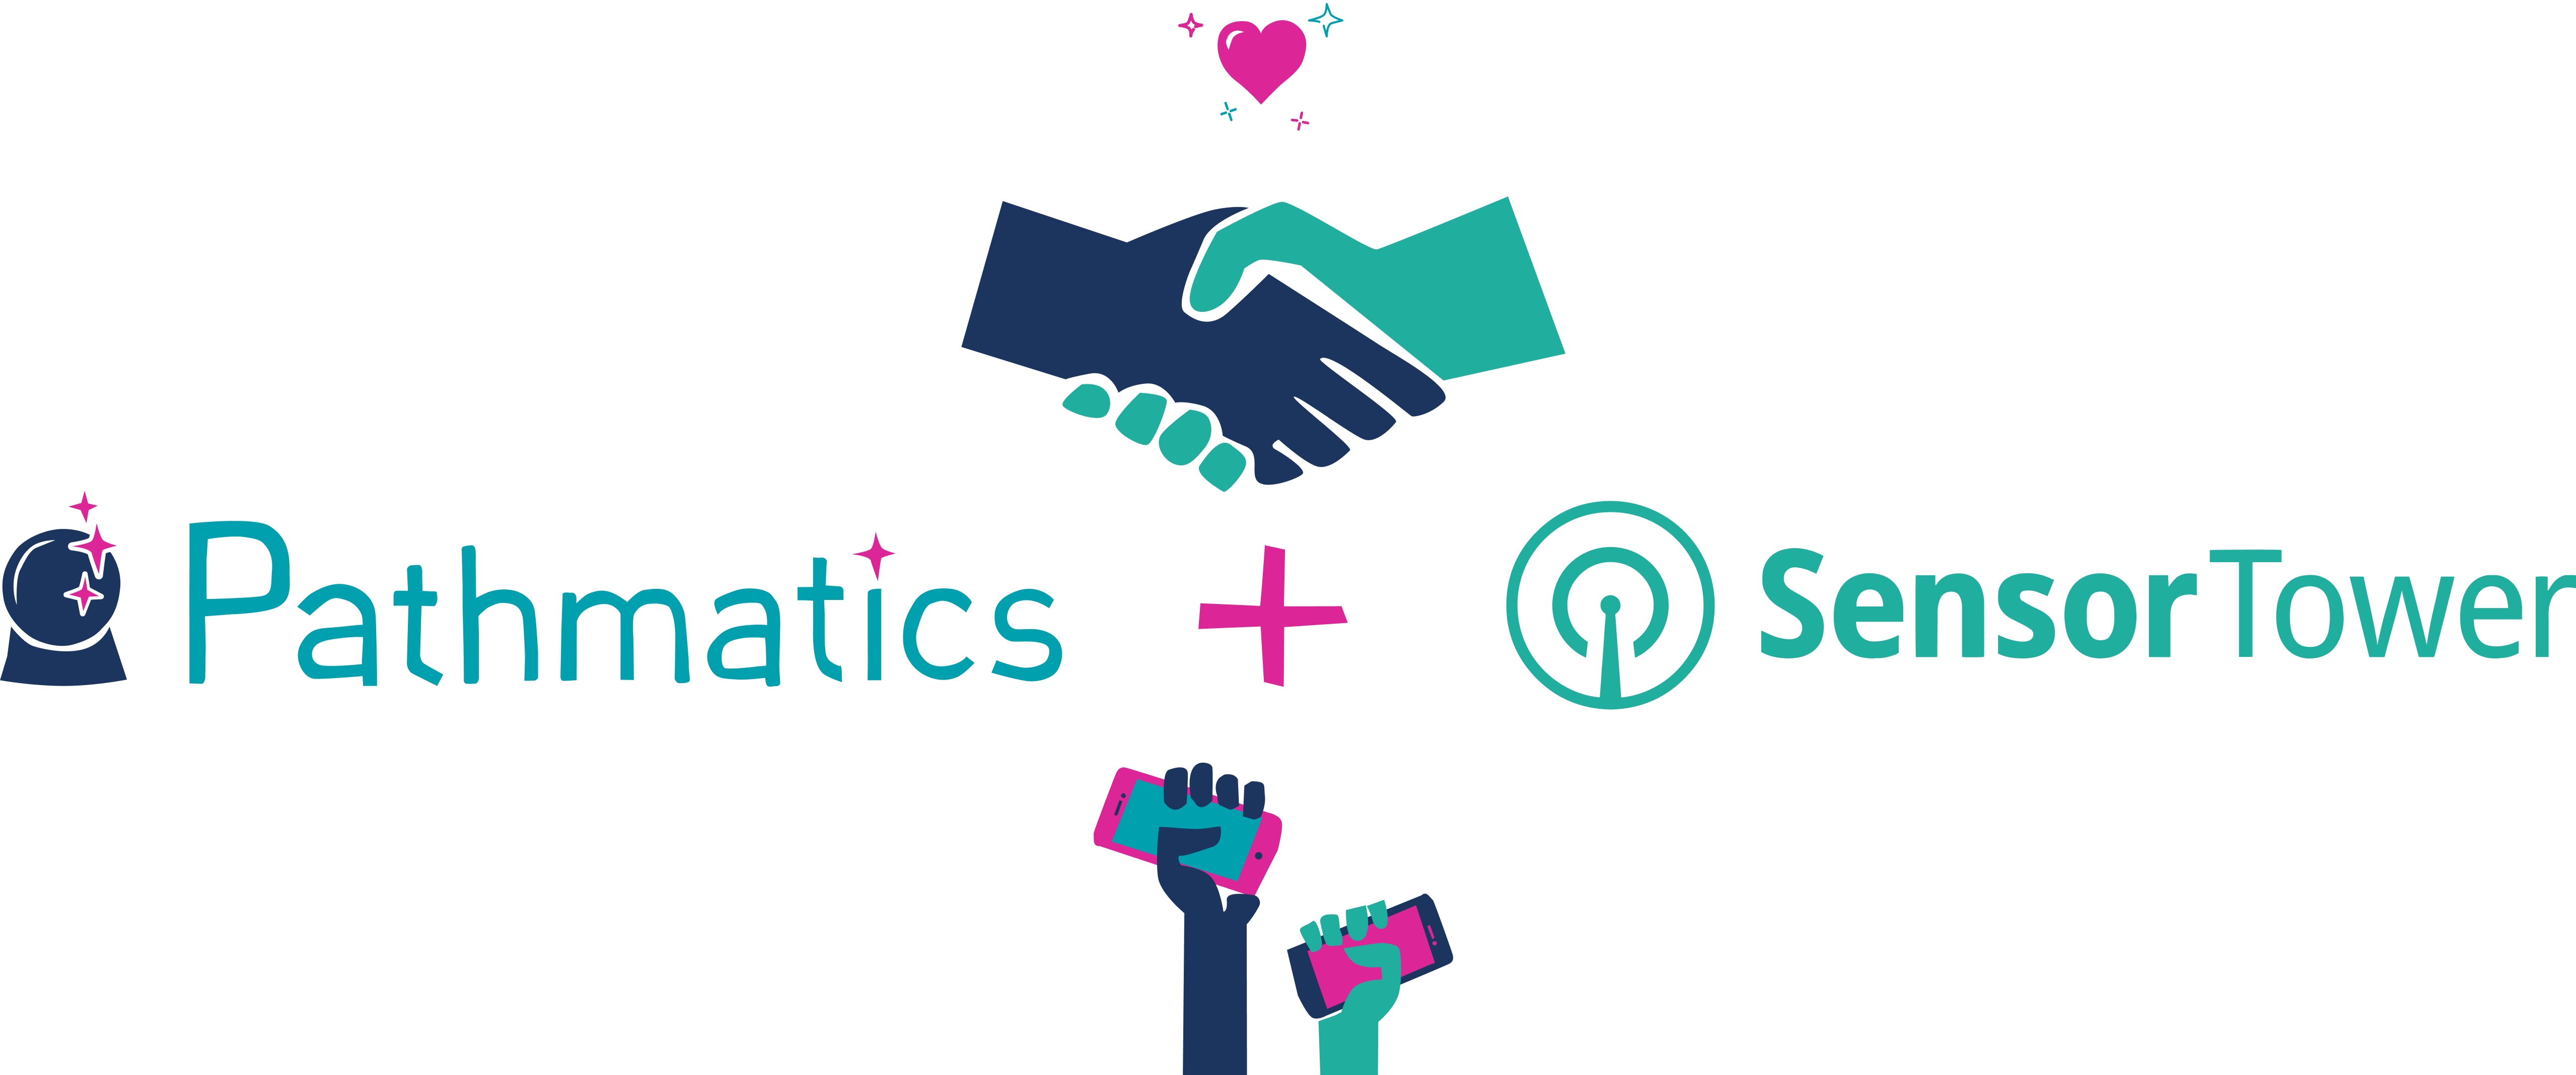 Sensor Tower Acquires Pathmatics, Scaling Trusted and Actionable Insights For the Digital Economy